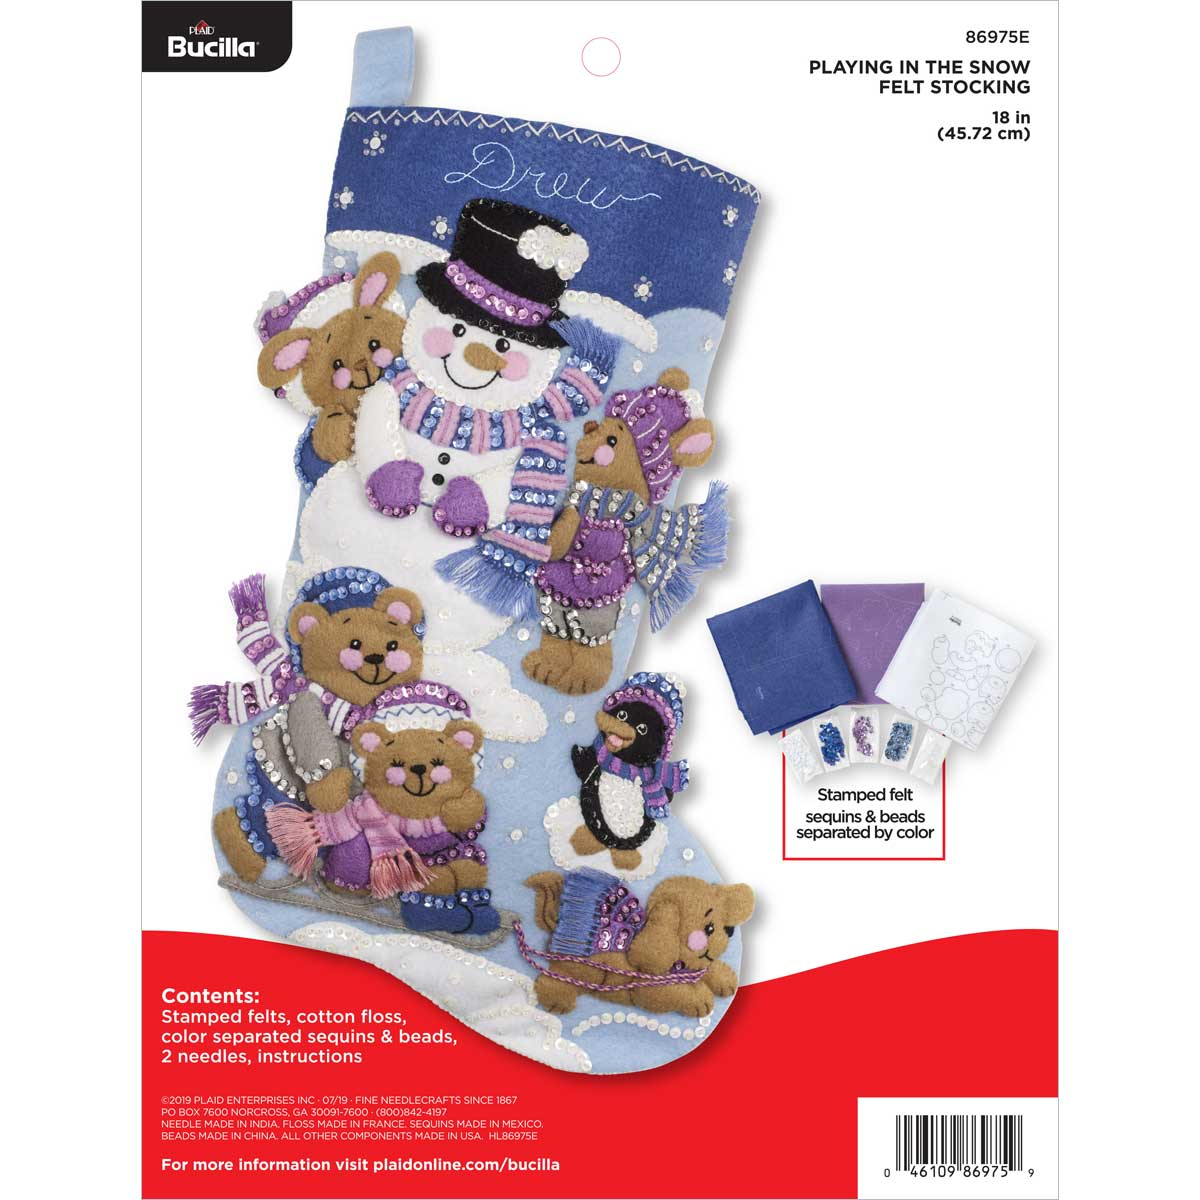 Bucilla ® Seasonal - Felt - Stocking Kits - Playing in the Snow - 86975E